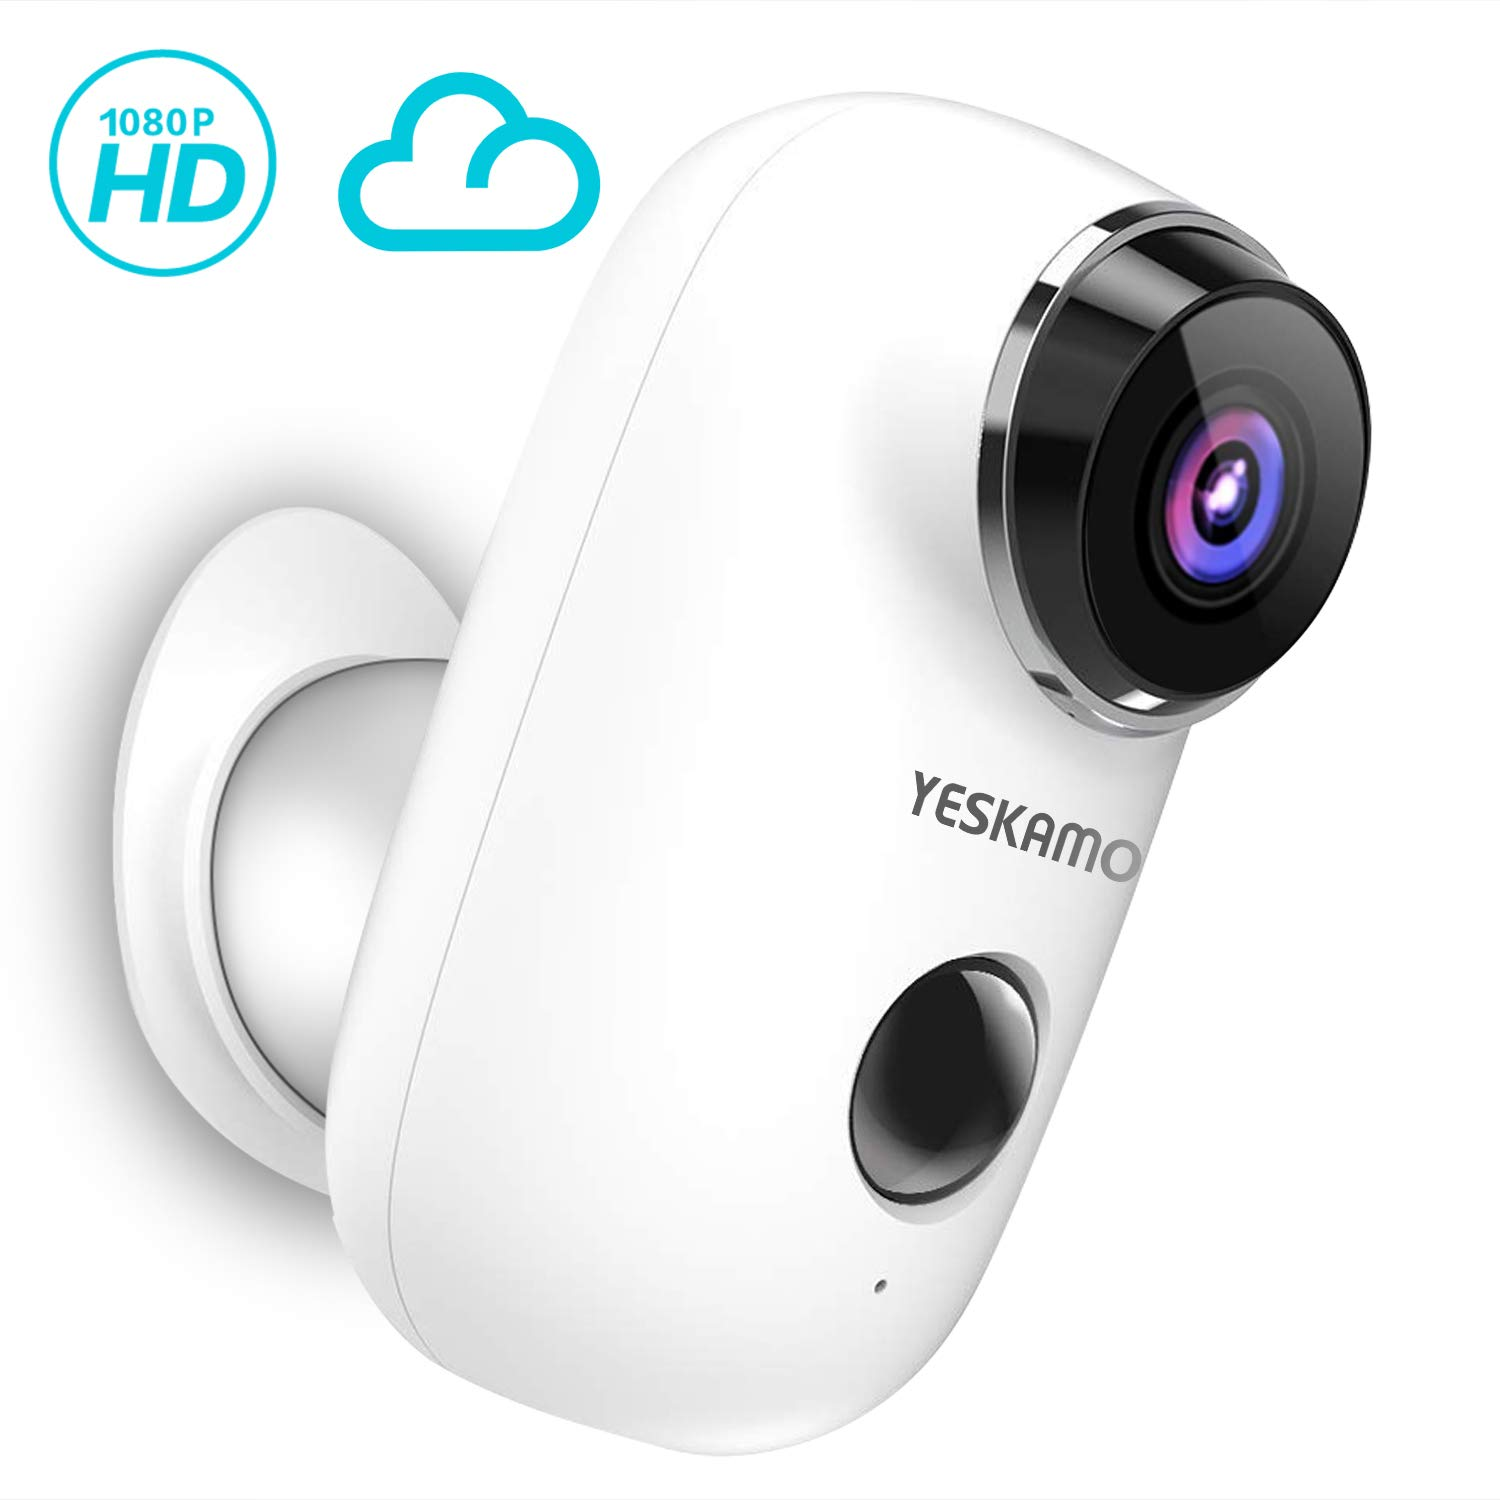 Battery Powered Security Camera Outdoor Wireless Rechargeable Battery Powered WiFi Camera,1080P HD Home Video Surveillance Camera, Wire Free IP Camera with 2 Way & Motion Detection